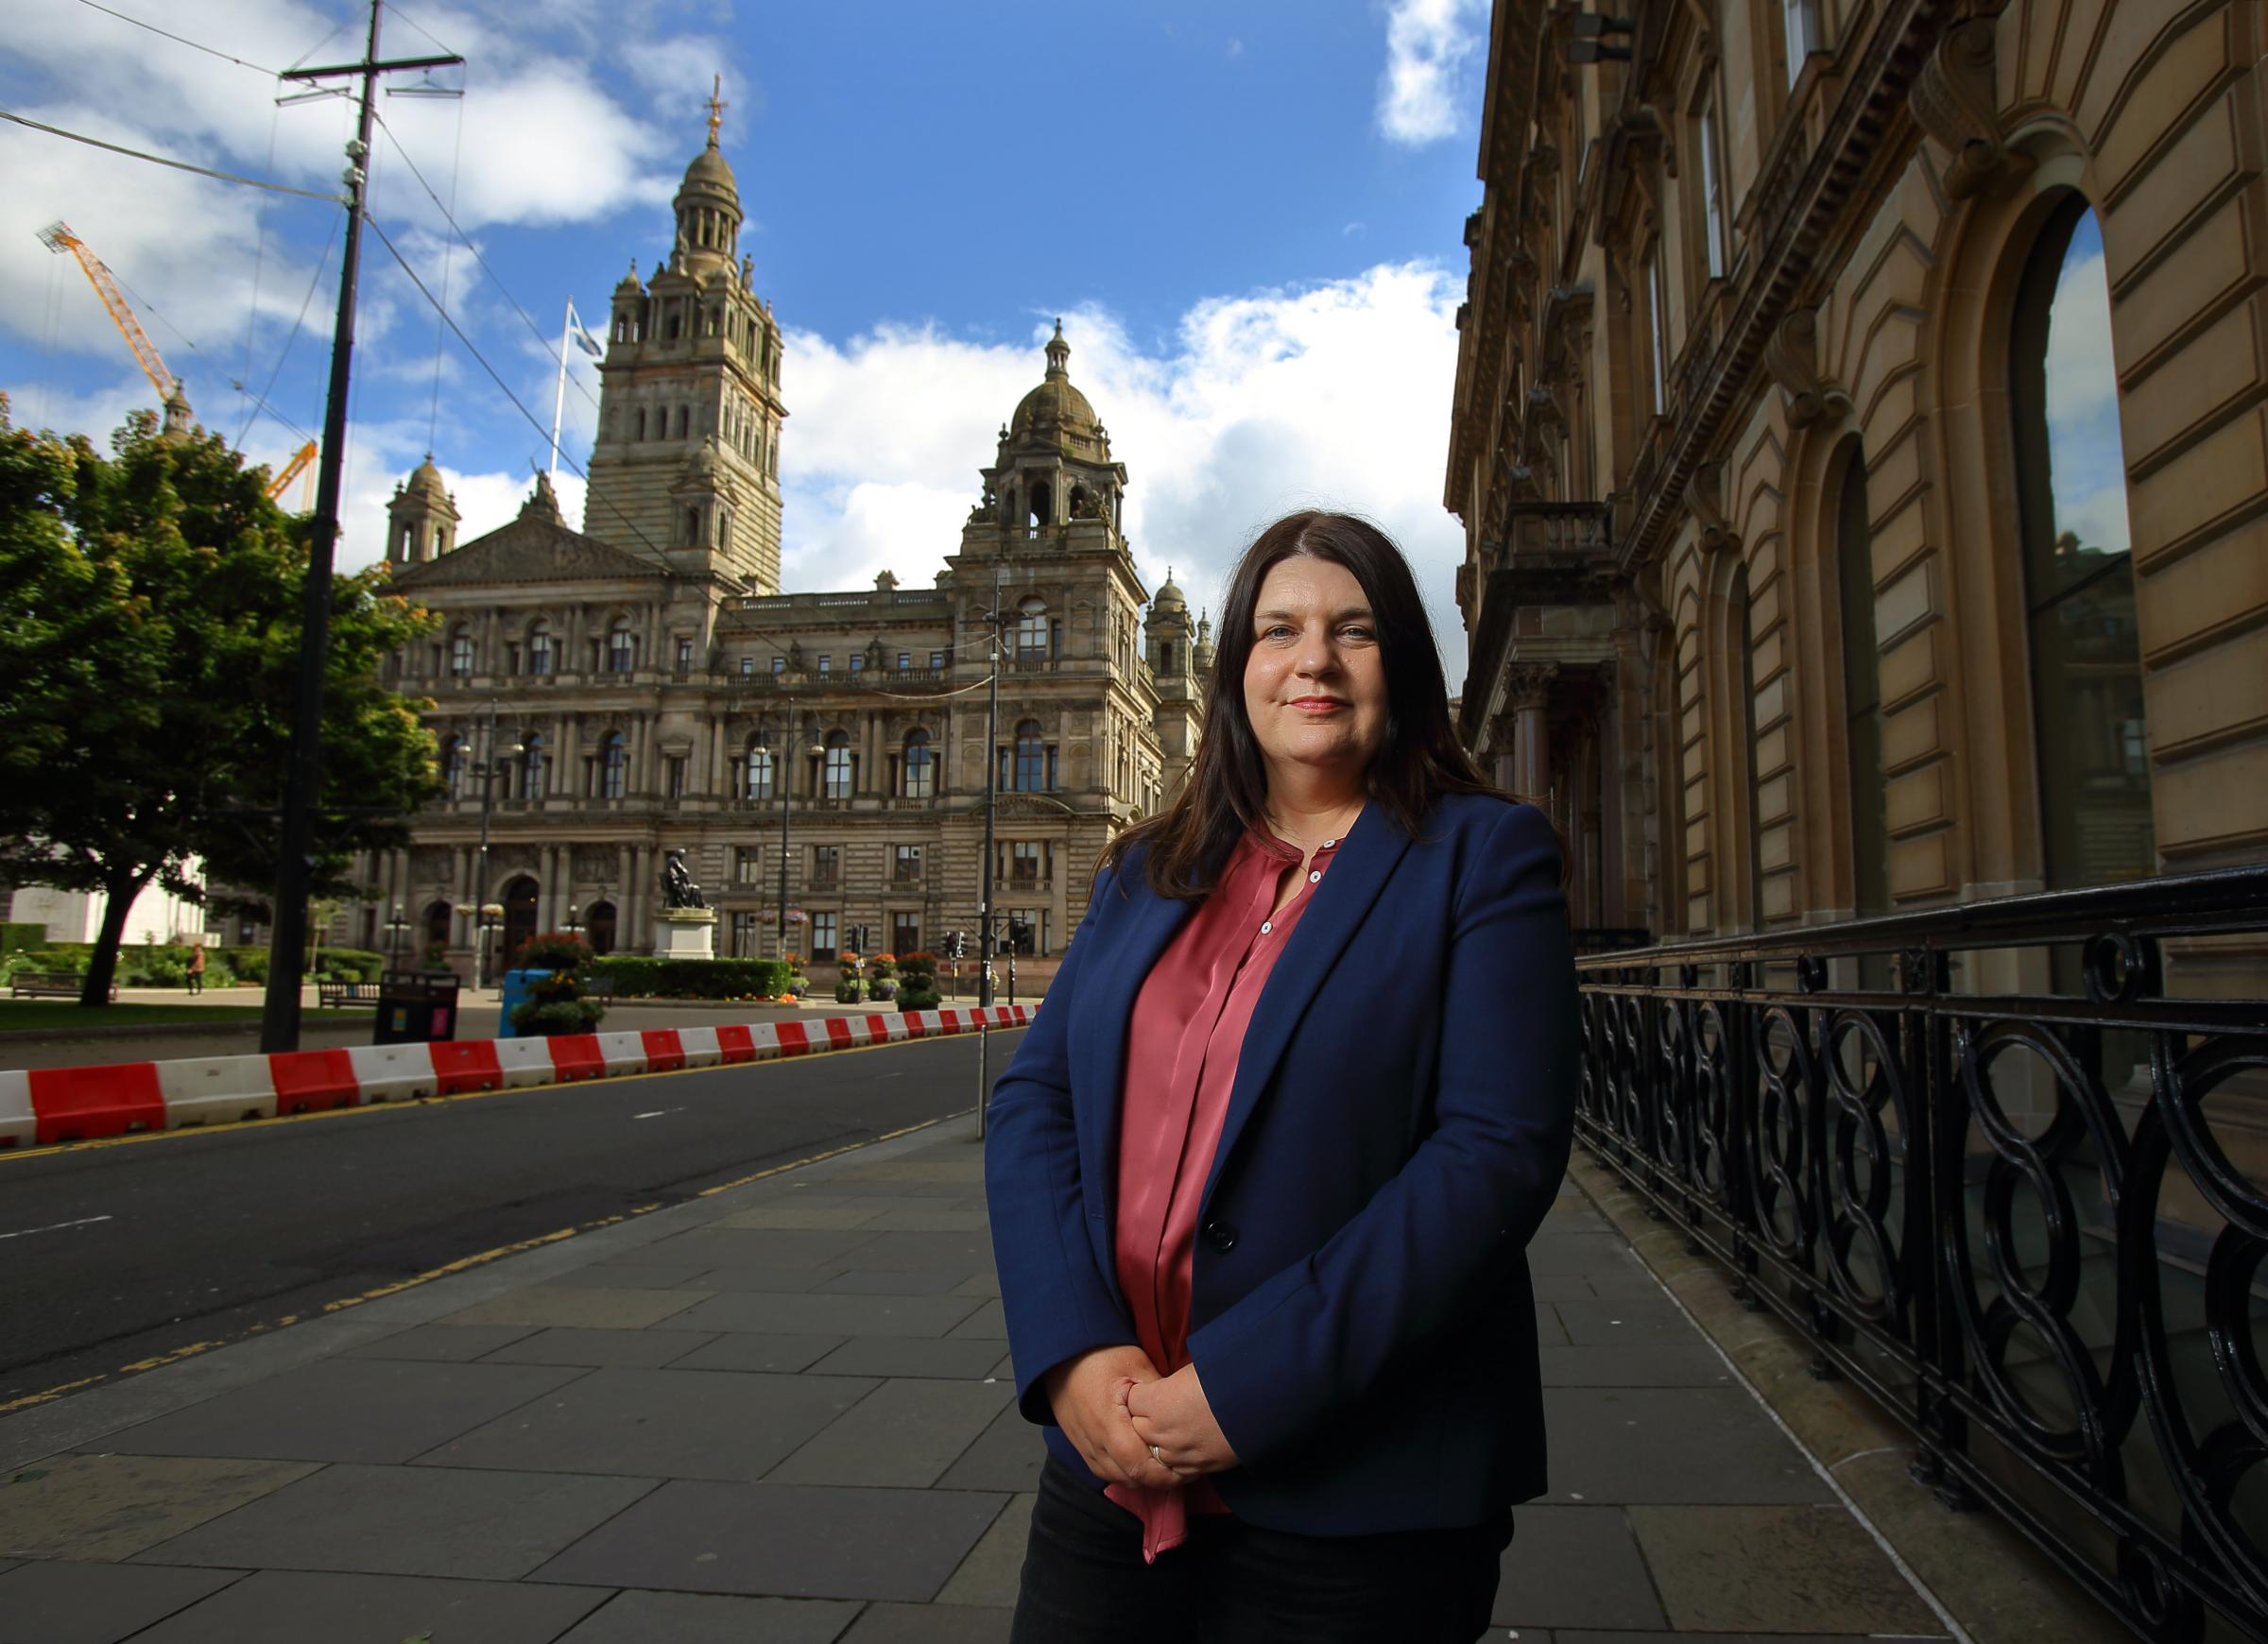 Glasgow council leader welcomes Westminster plan to invest millions in Scotland